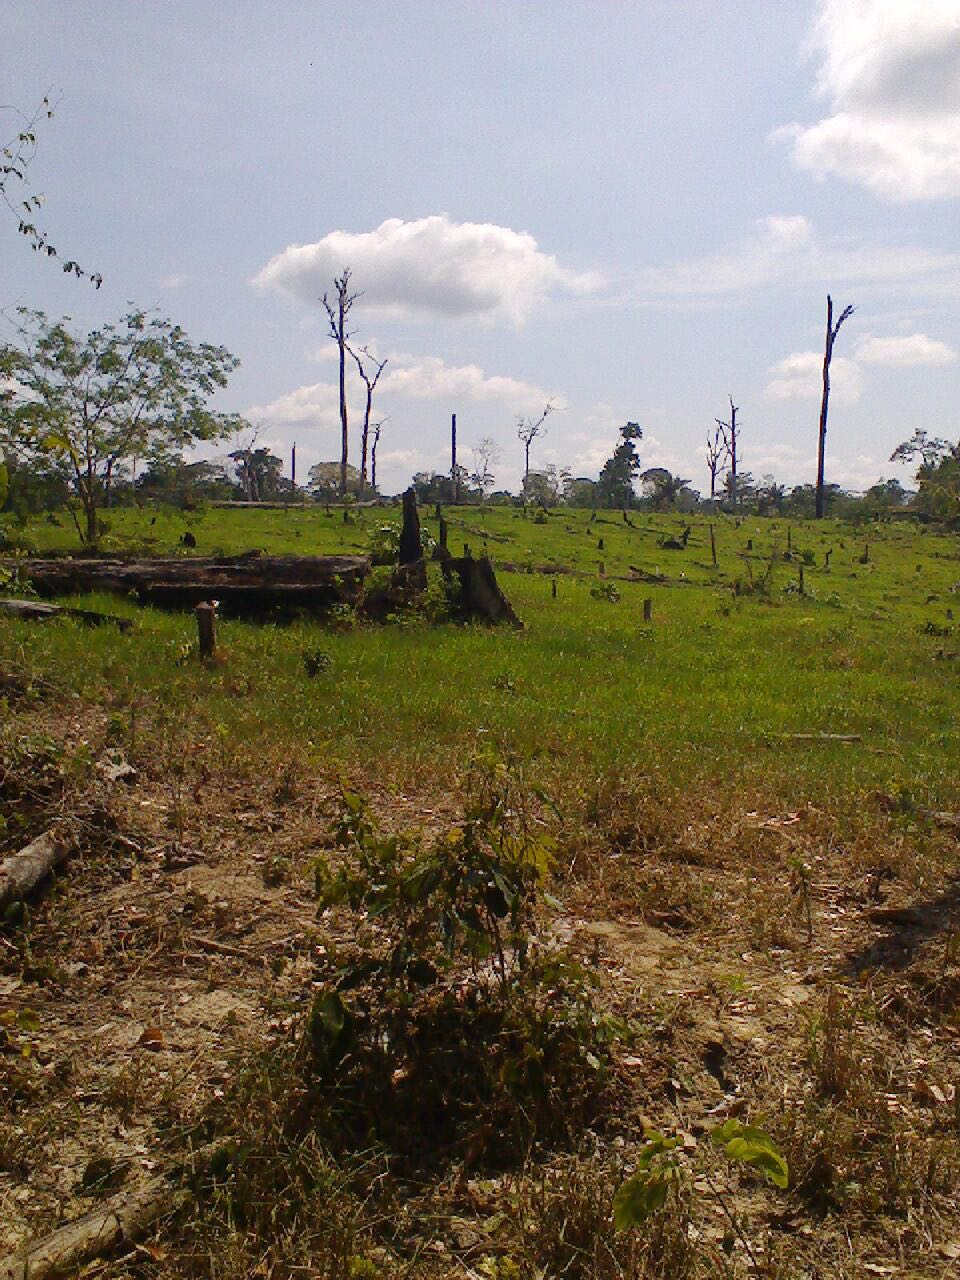 Deforestation by Plantaciones de Pucallpa SAC. Photo by Iván Flores